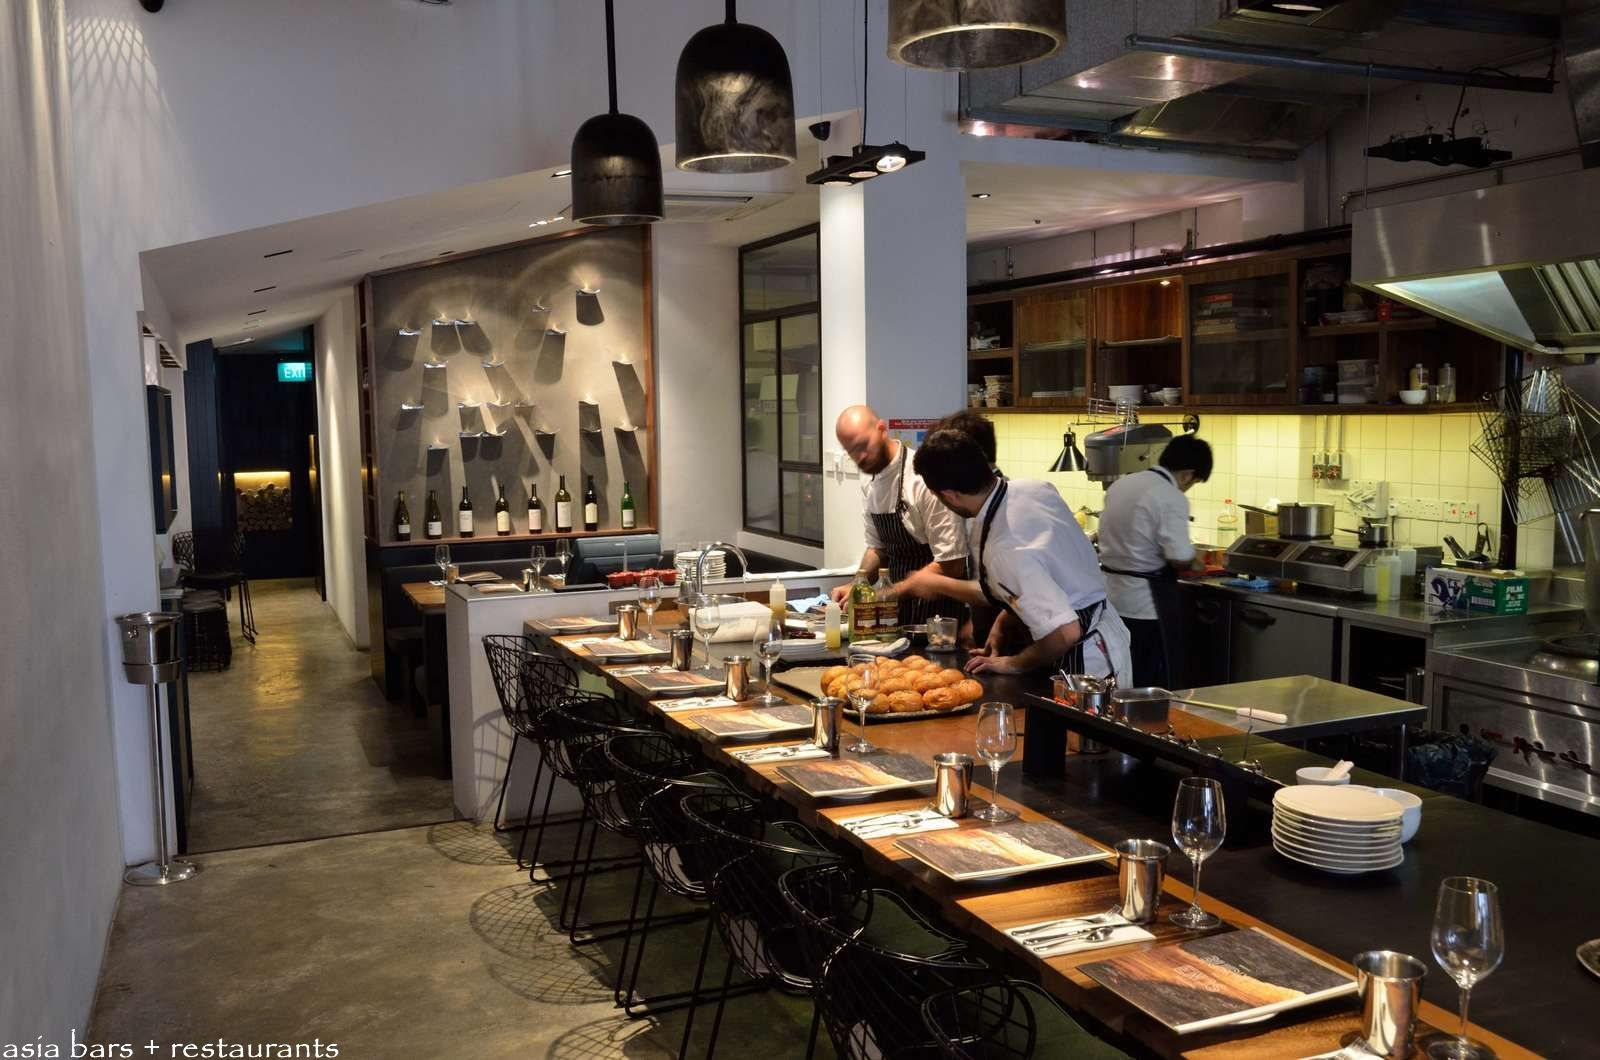 Burnt ends grill restaurant bar singapore asia bars restaurants - Charcoal grill restaurant ...